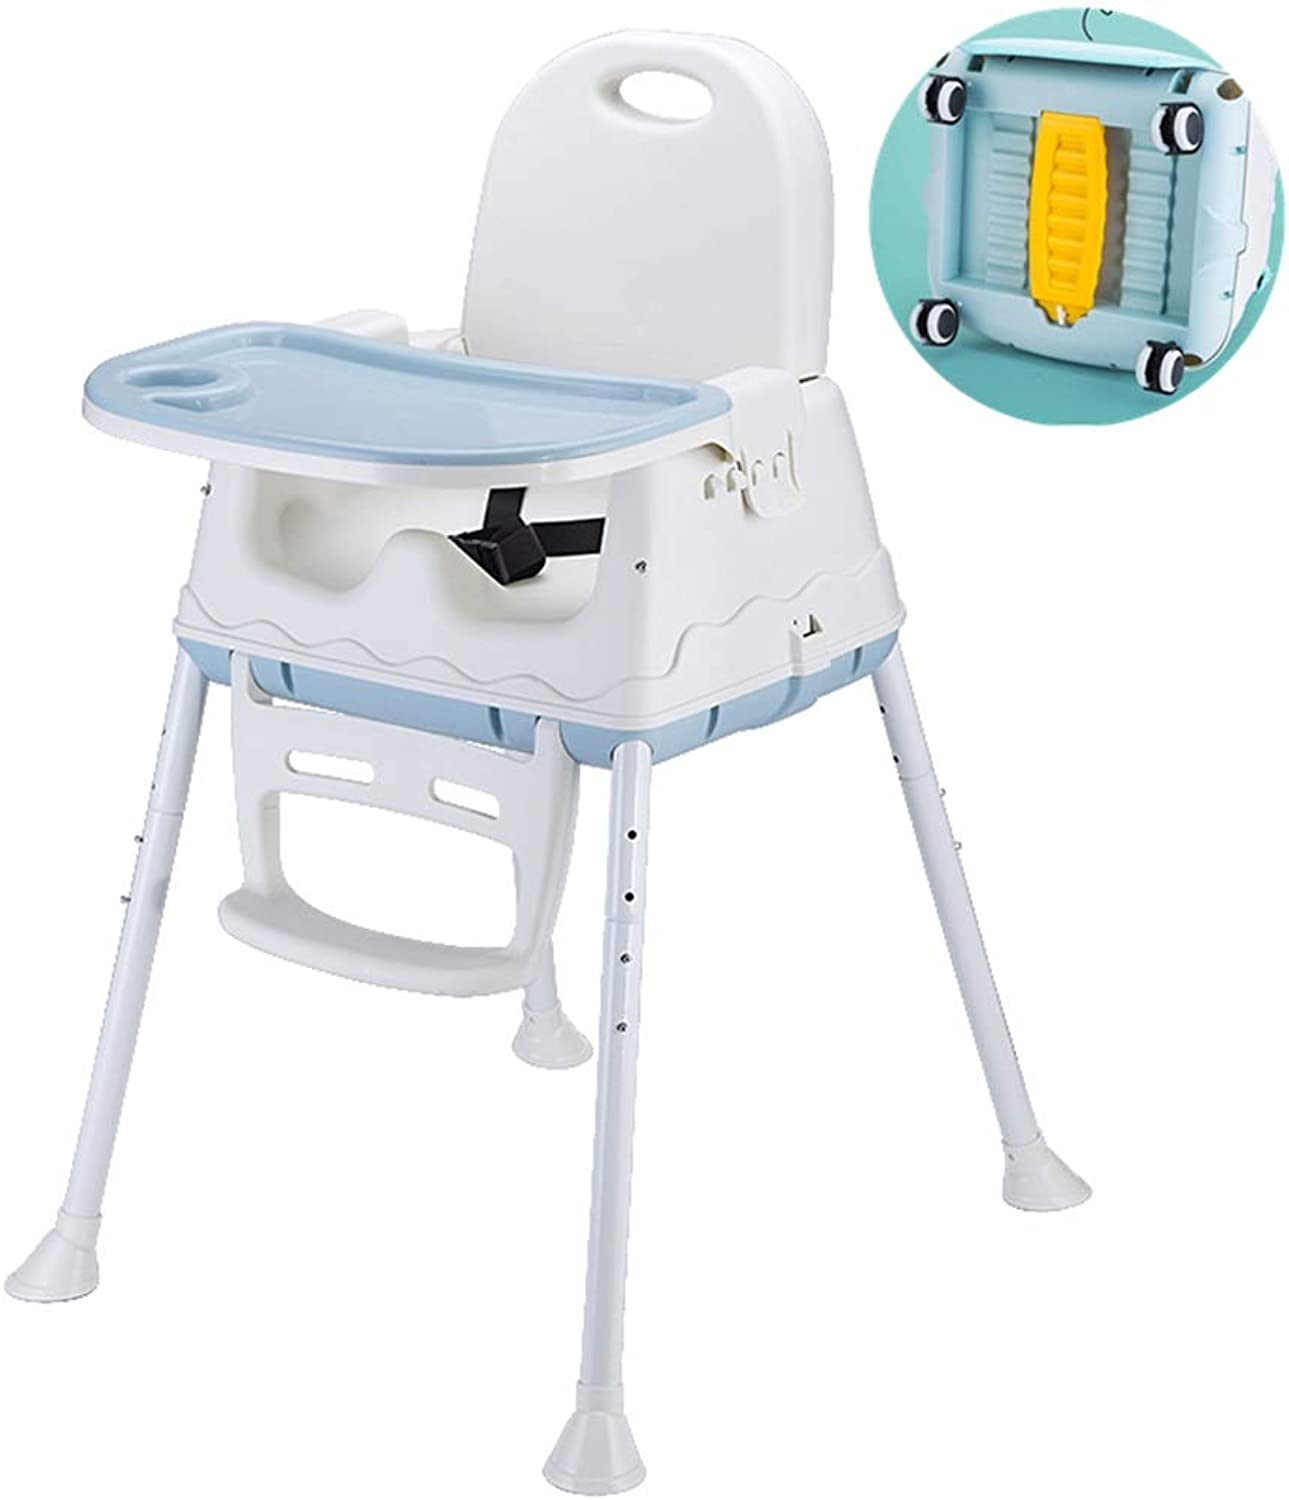 Adjustable 2-in-1 Baby Highchairs with Universal Wheel, High Chairs from 6 Months - 5 Years Old (color   bluee)